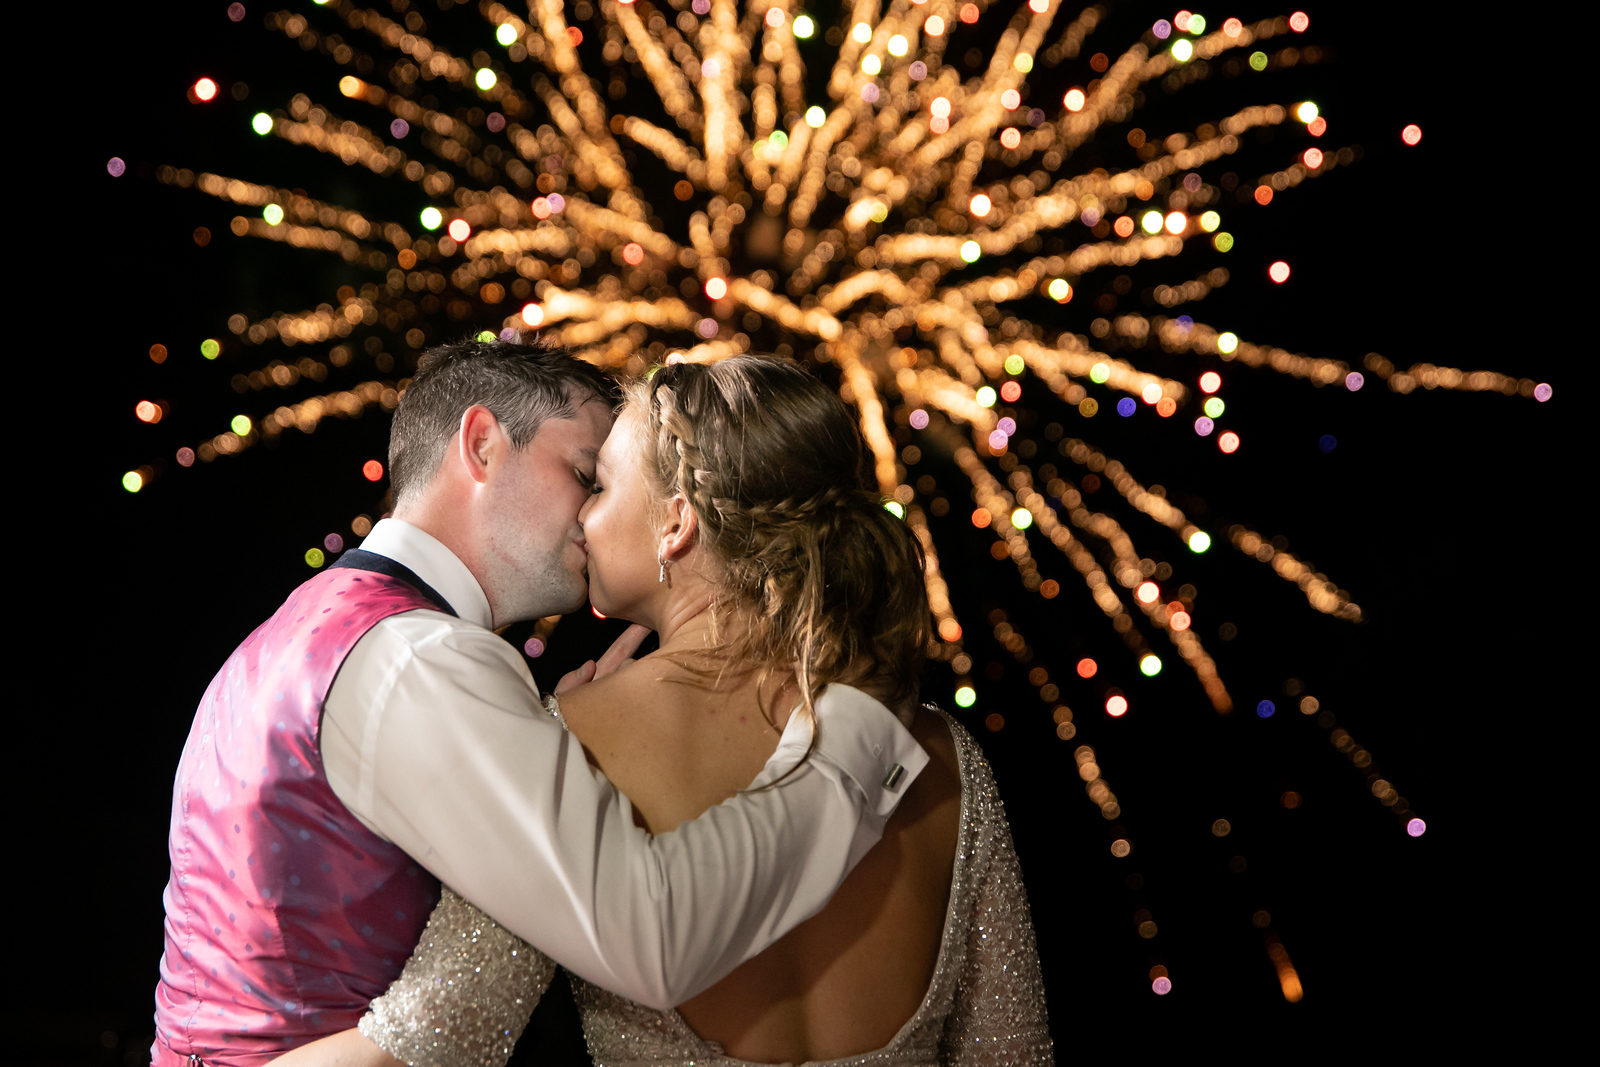 newlywed couple kissing with fireworks going off behind them on their wedding night